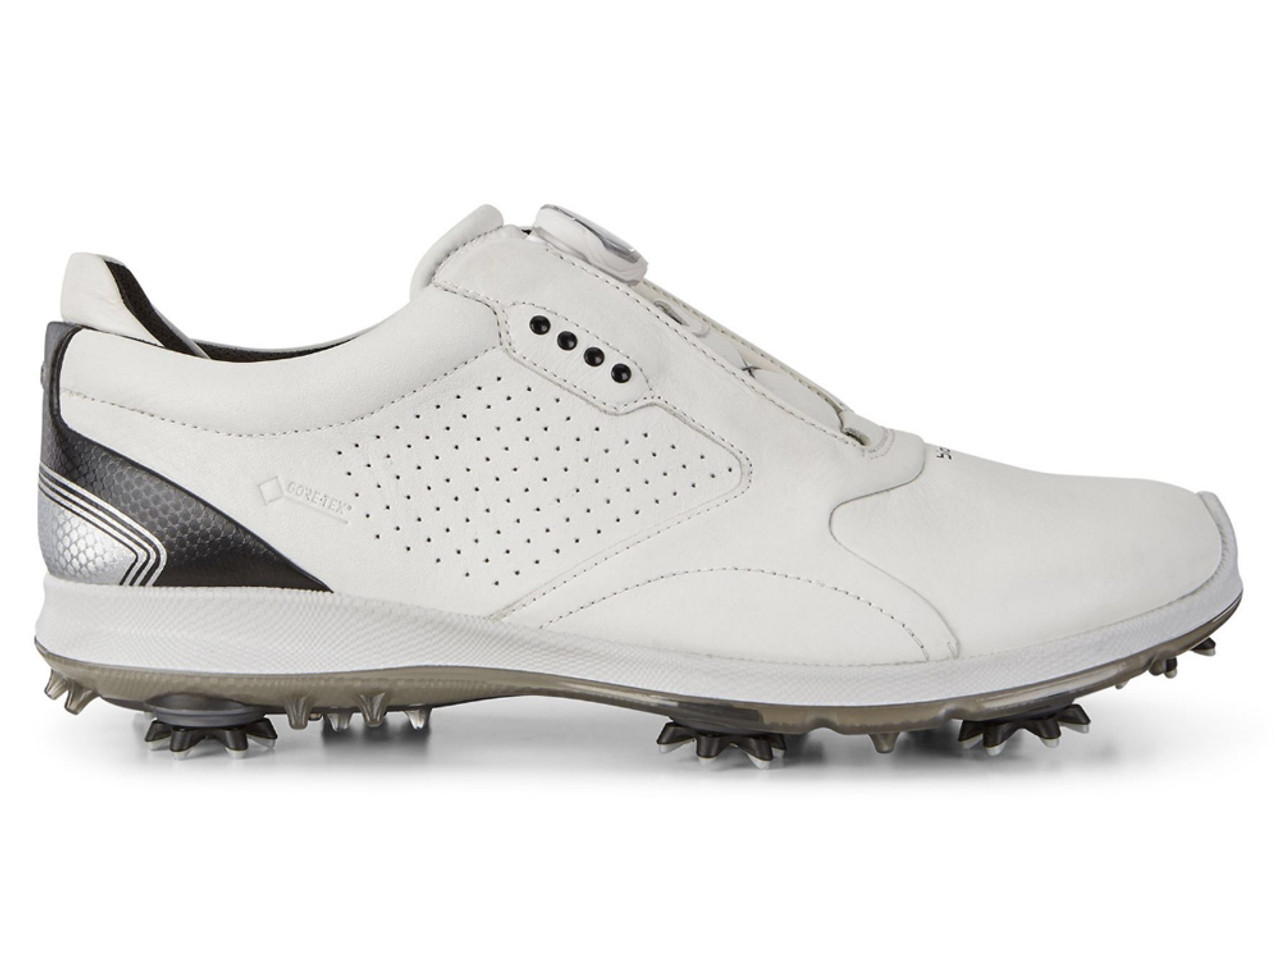 discount ecco golf shoes